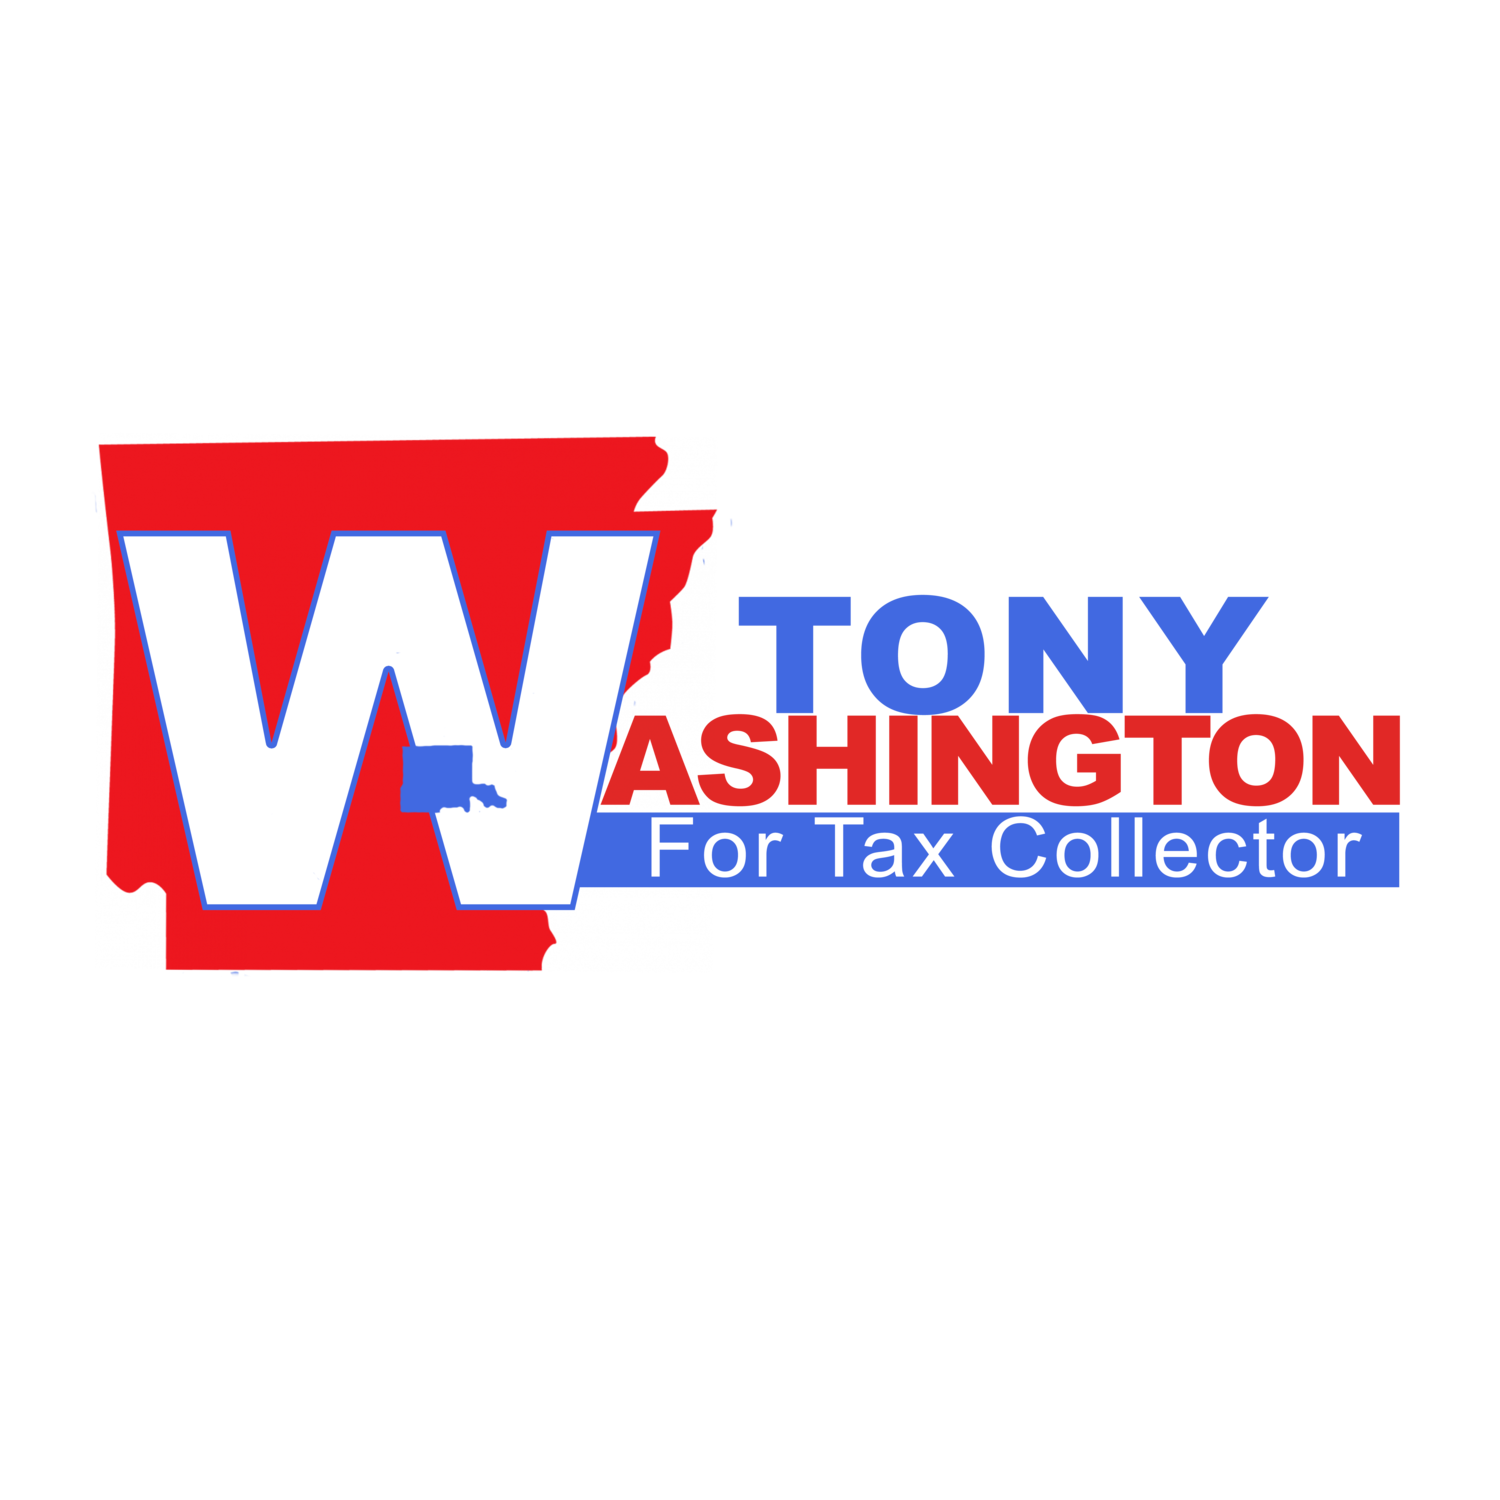 Tony Washington